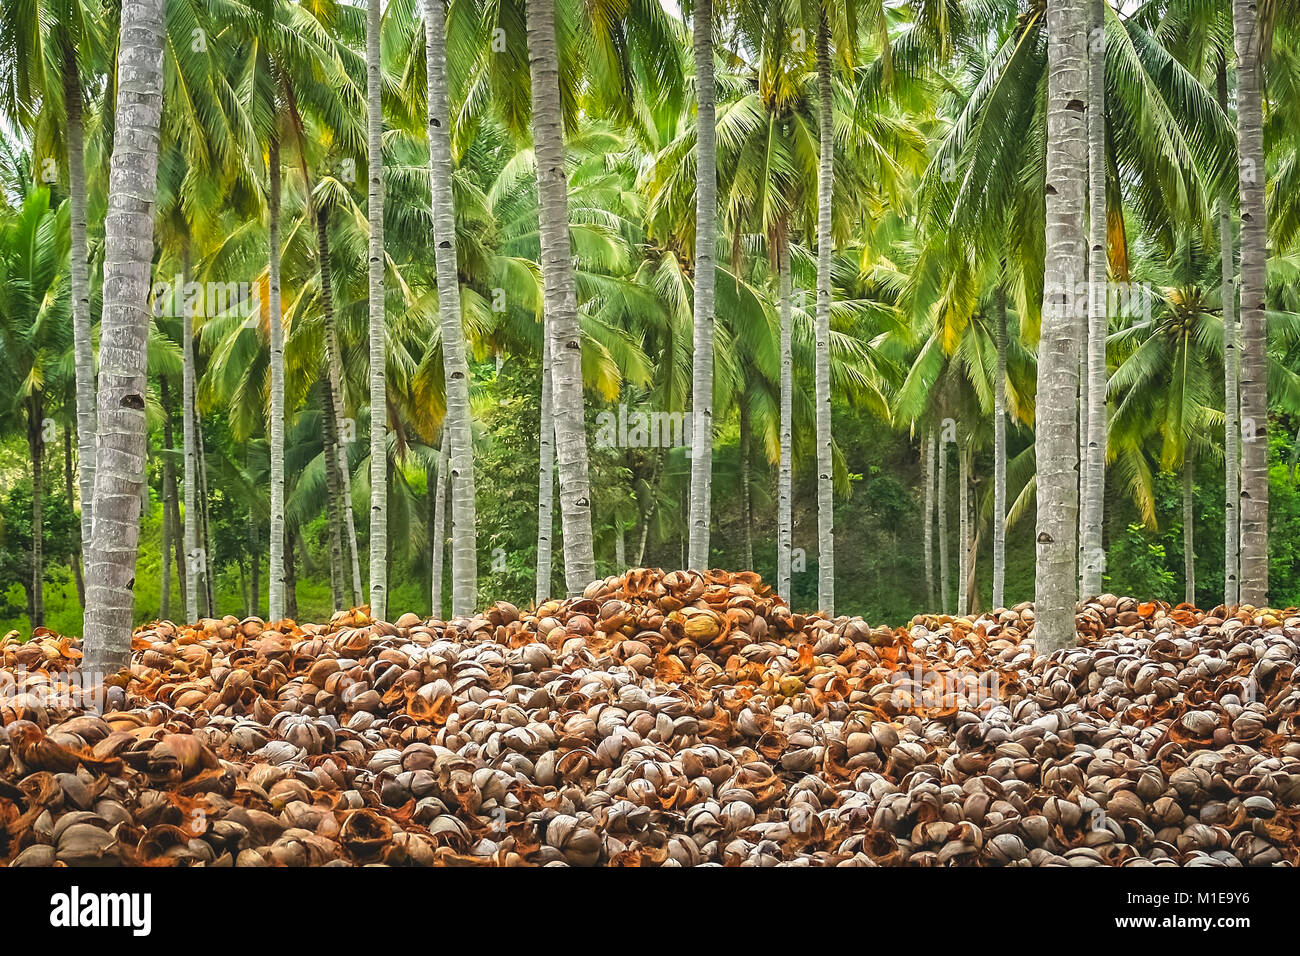 Pile of empty coconut shells under tall palmtrees in the jungle of tropical indonesian island Sumbava, Indonesia, - Stock Image